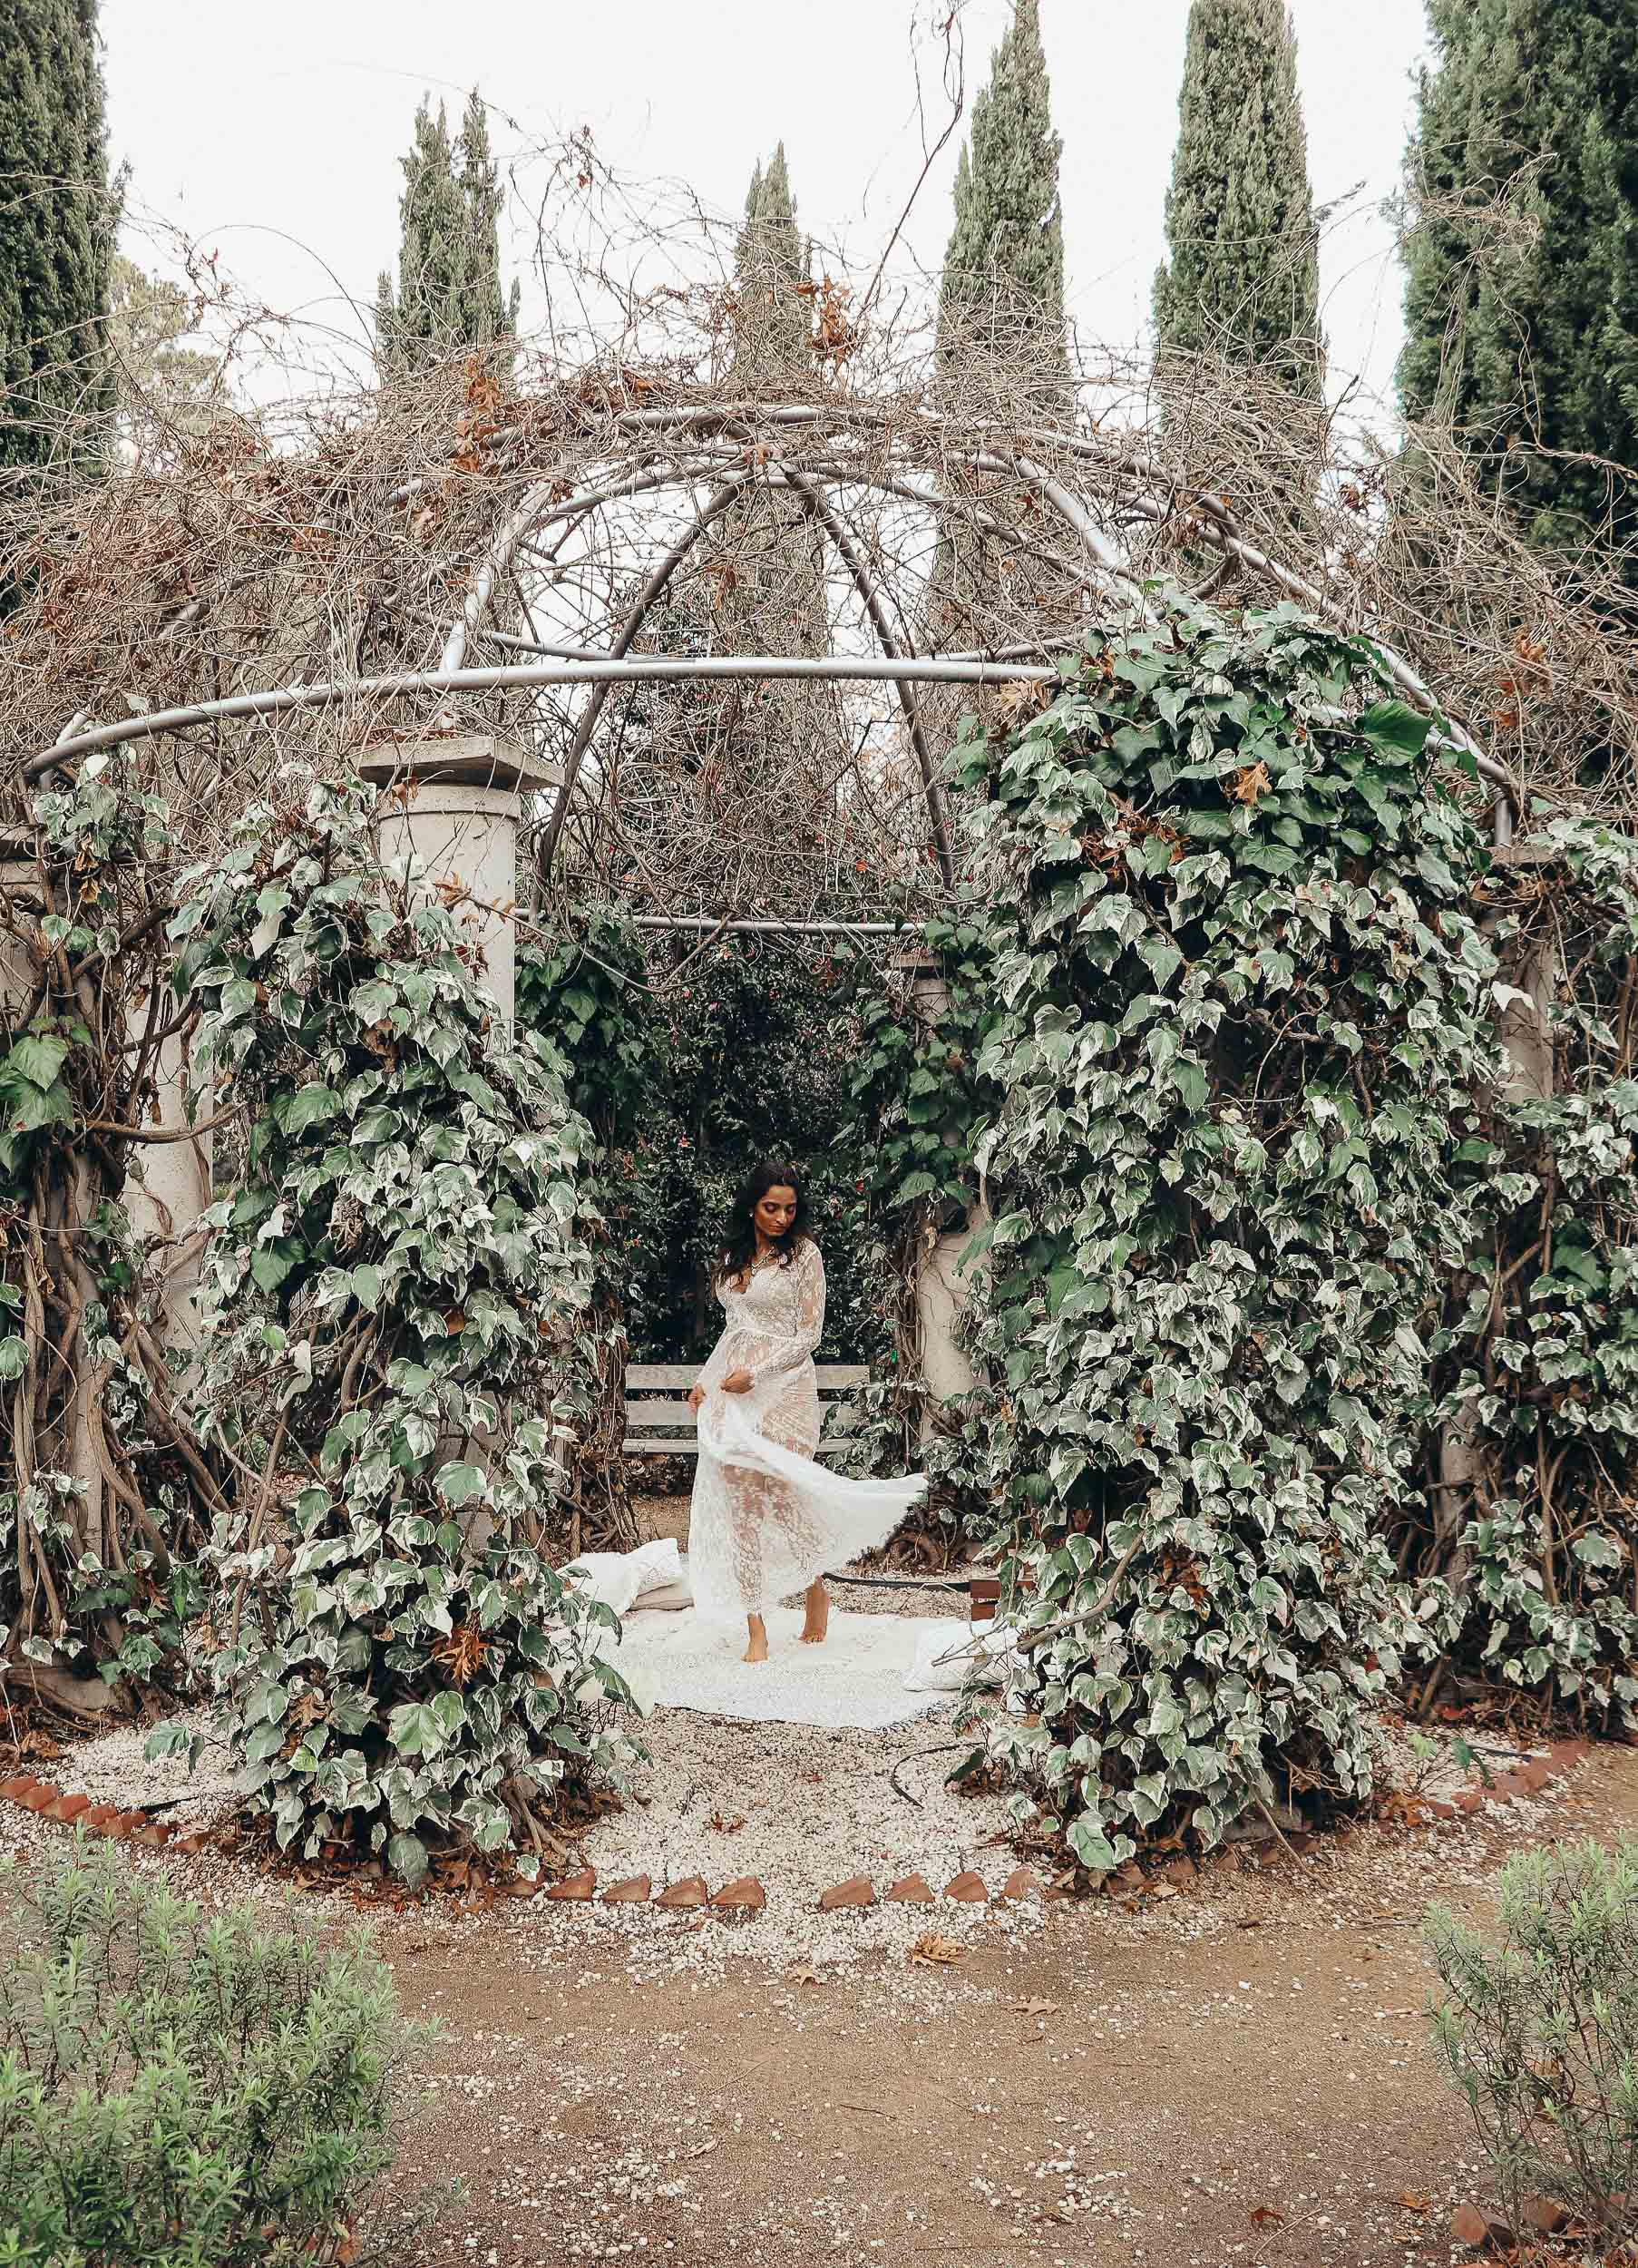 Girl standing on a mat in forest wearing white lace gown and twirling her grown for moody shot-to discuss PMS and mental health